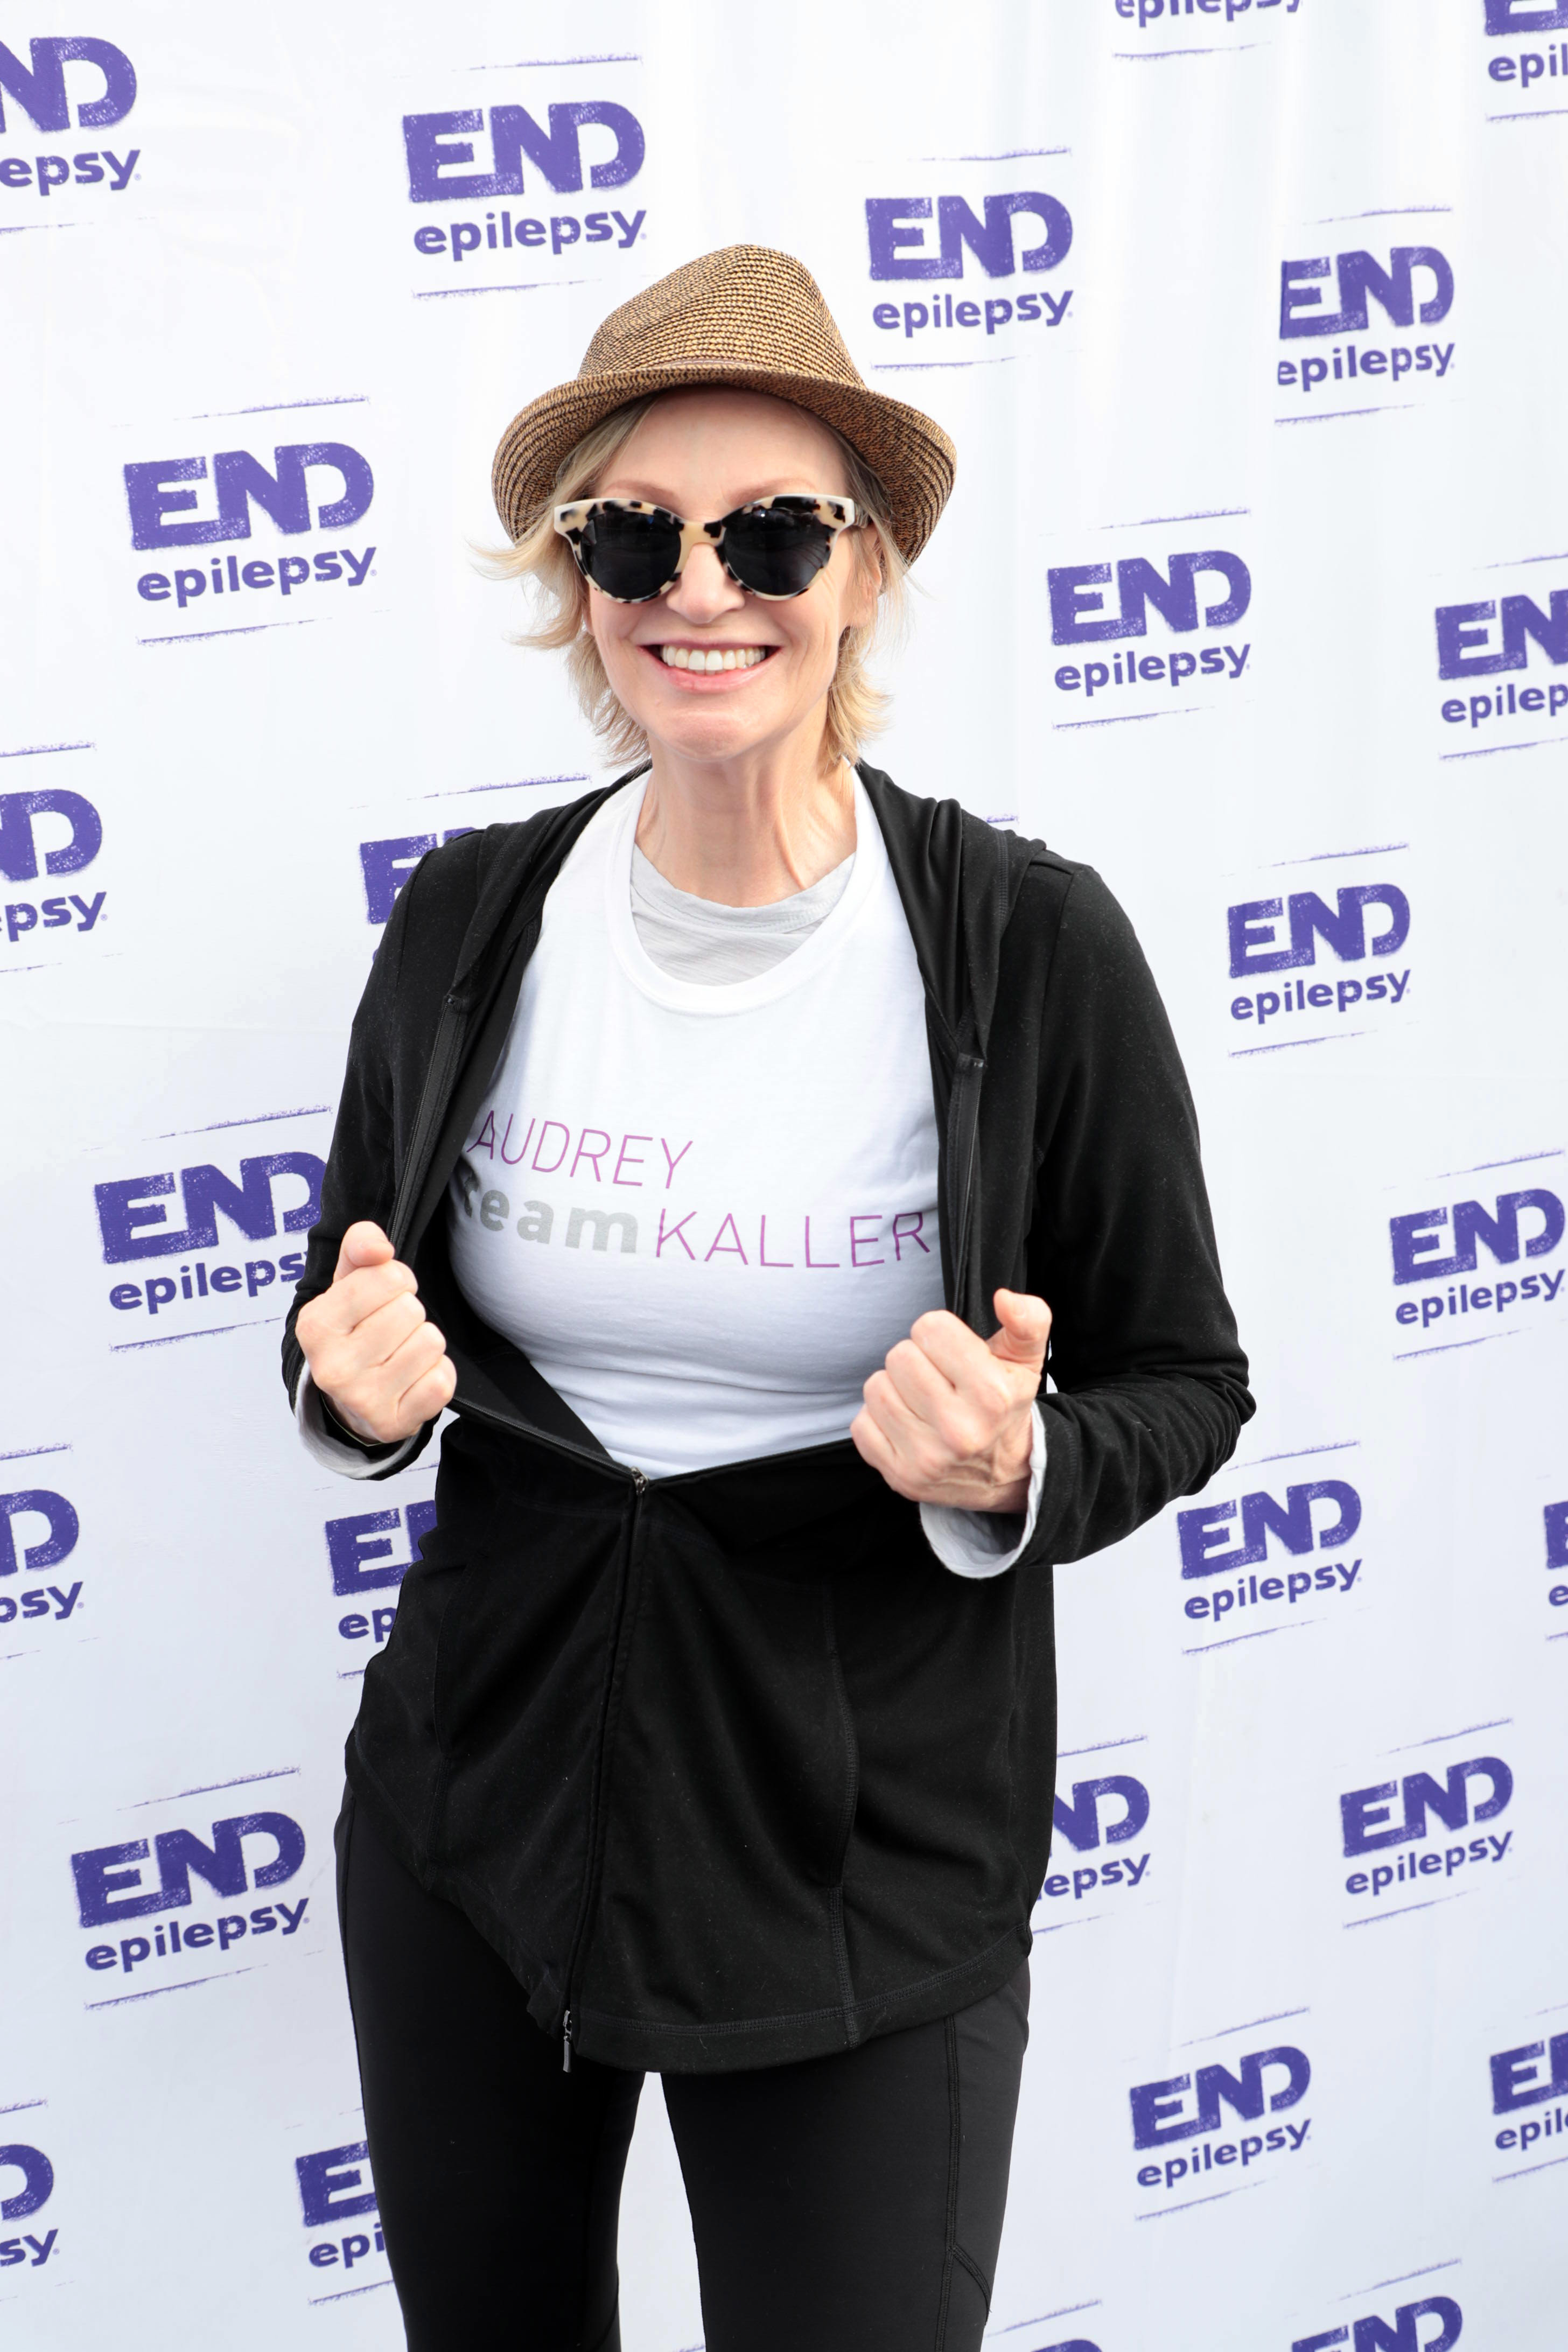 Jane Lynch attends The Walk to End Epilepsy in Pasadena, Calif., on Nov. 5, 2017.